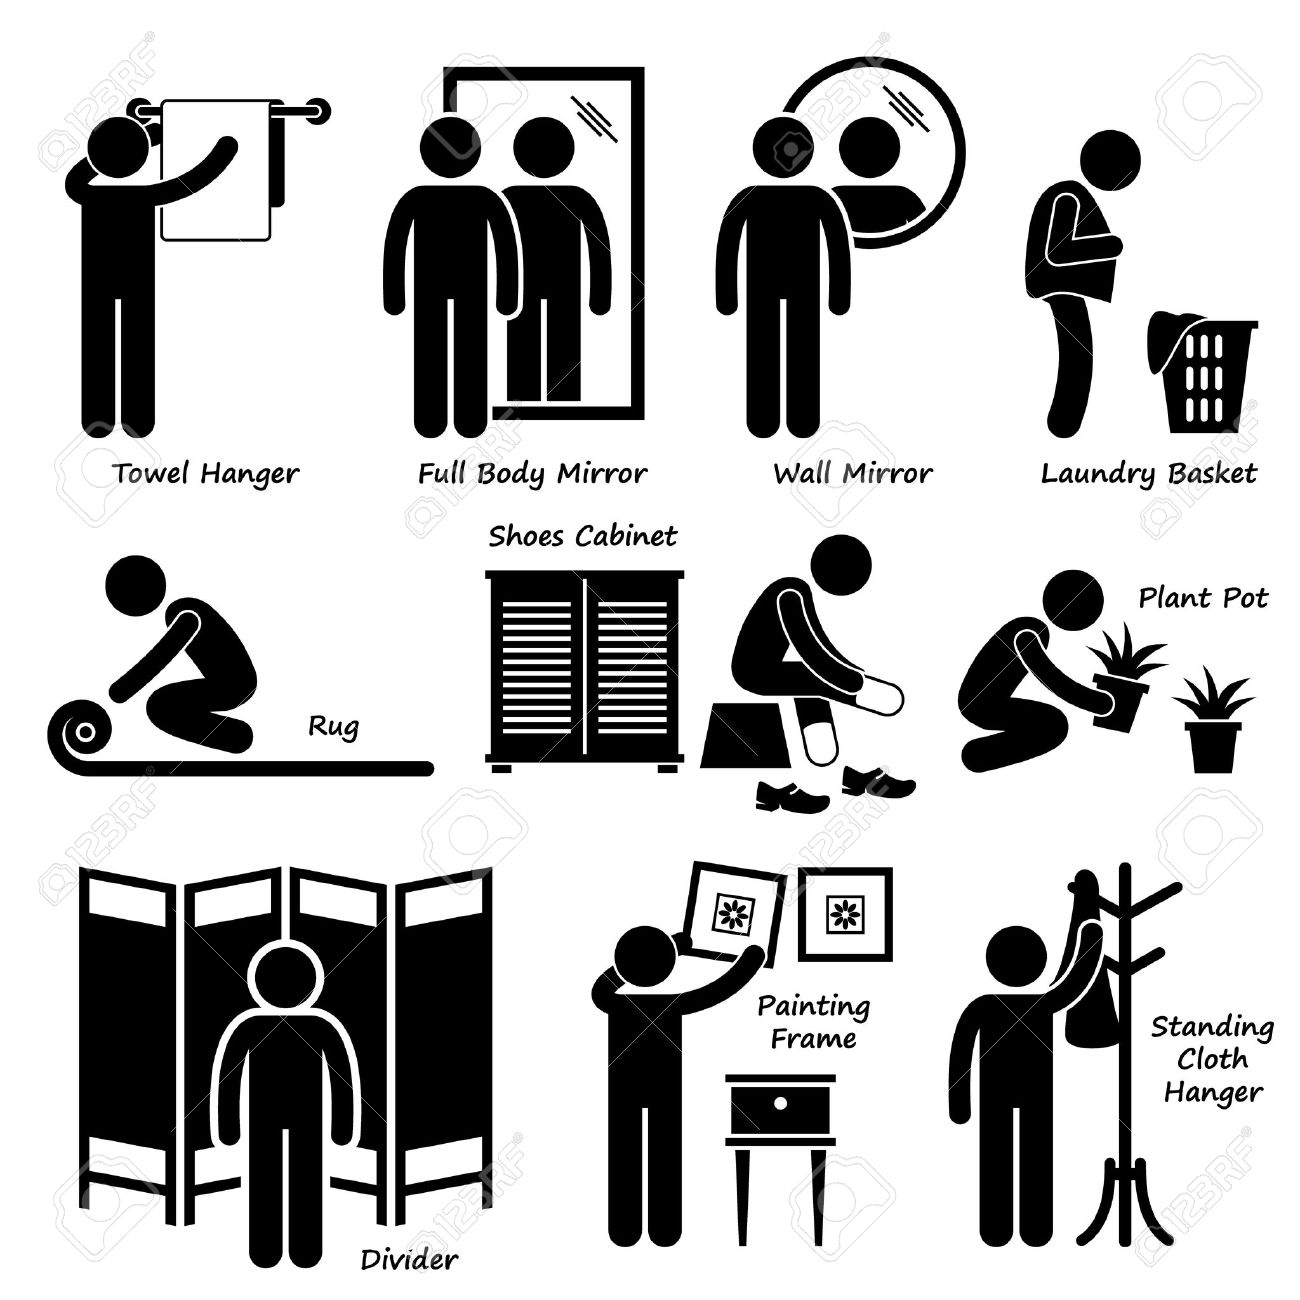 Home House Accessories and Decorations Stick Figure Pictogram Icon Cliparts  Stock Vector   29120928. Home House Accessories And Decorations Stick Figure Pictogram